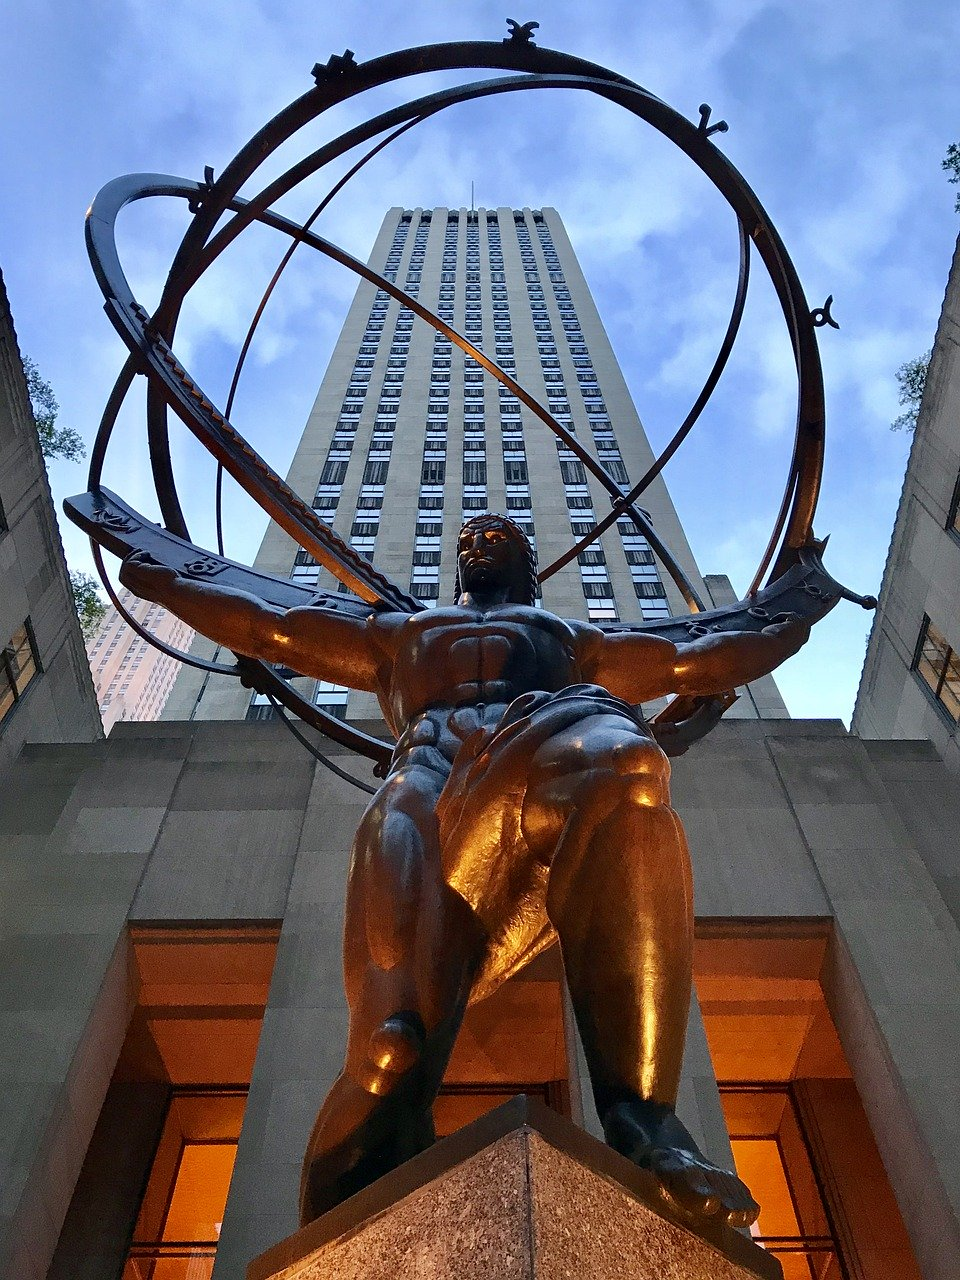 Rockefeller Center near New York's Penn Station